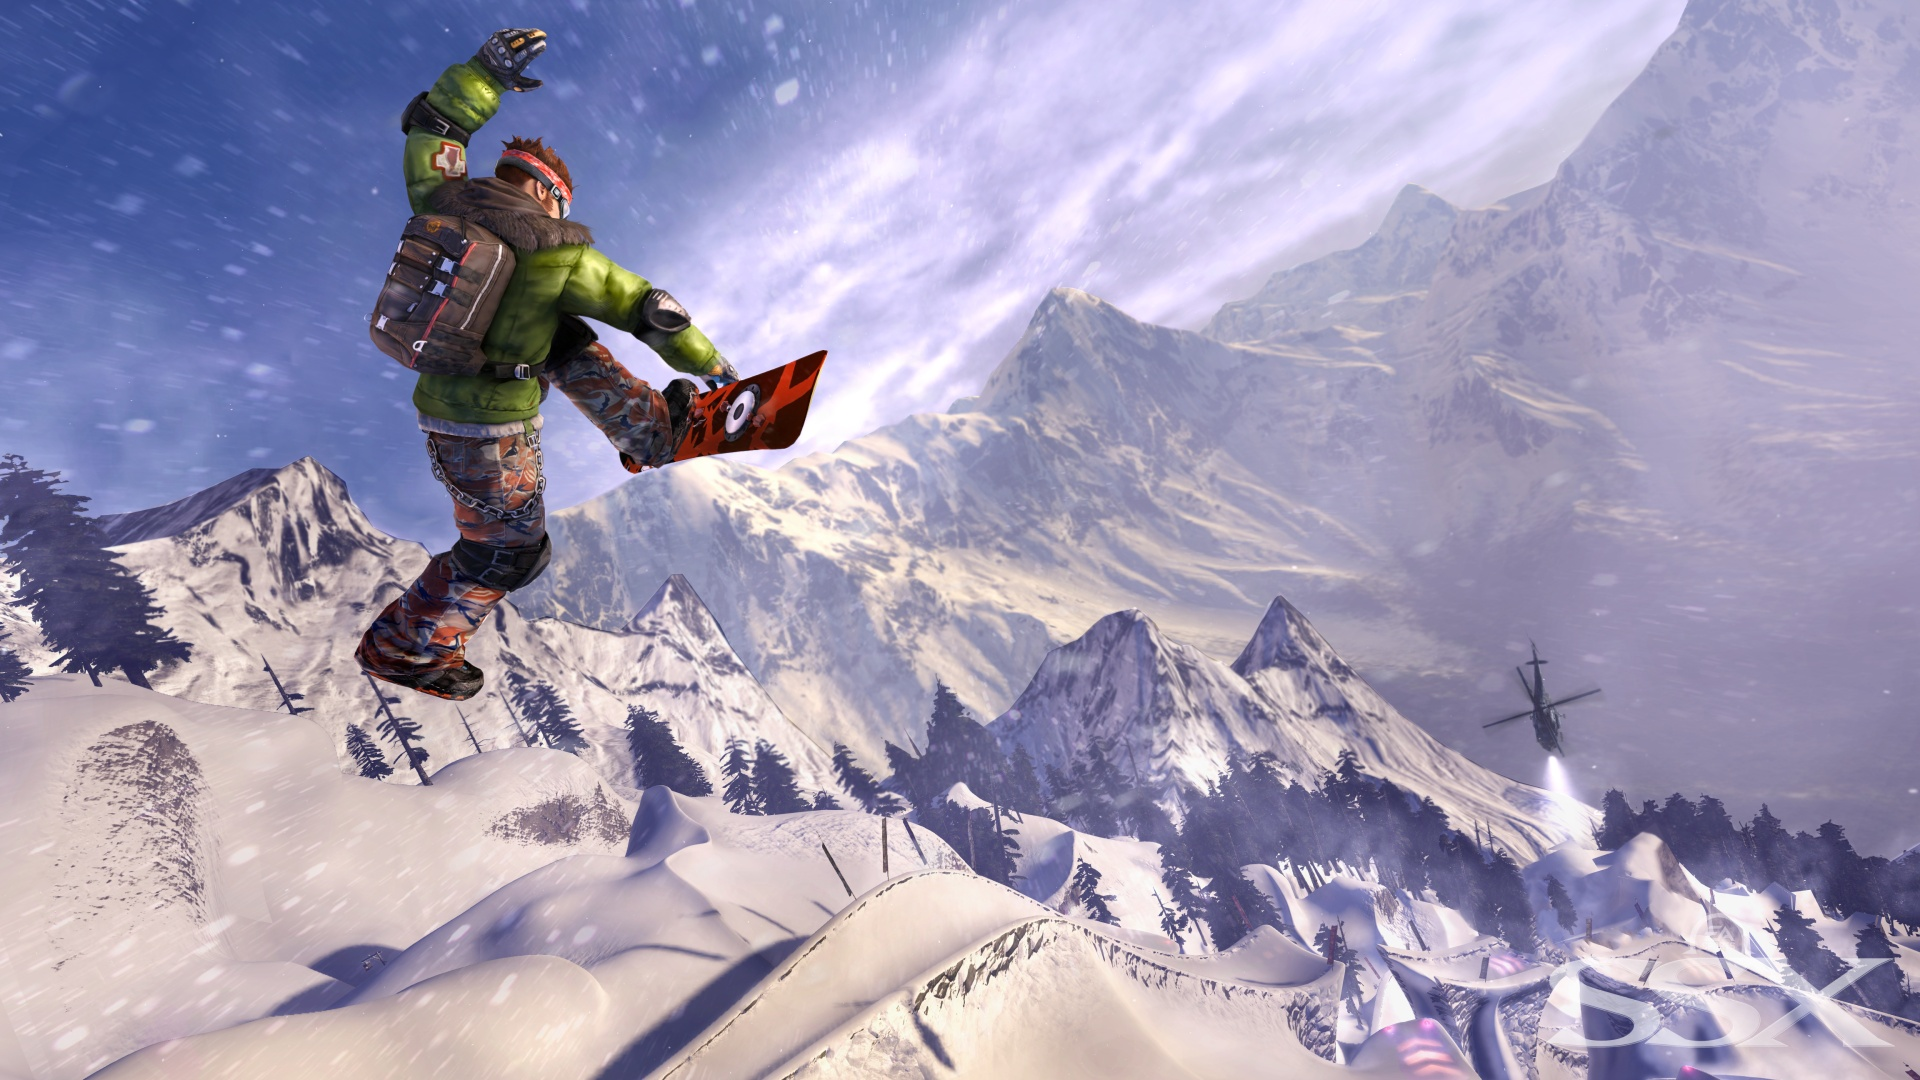 Snowboard Girl Wallpaper Ssx Review